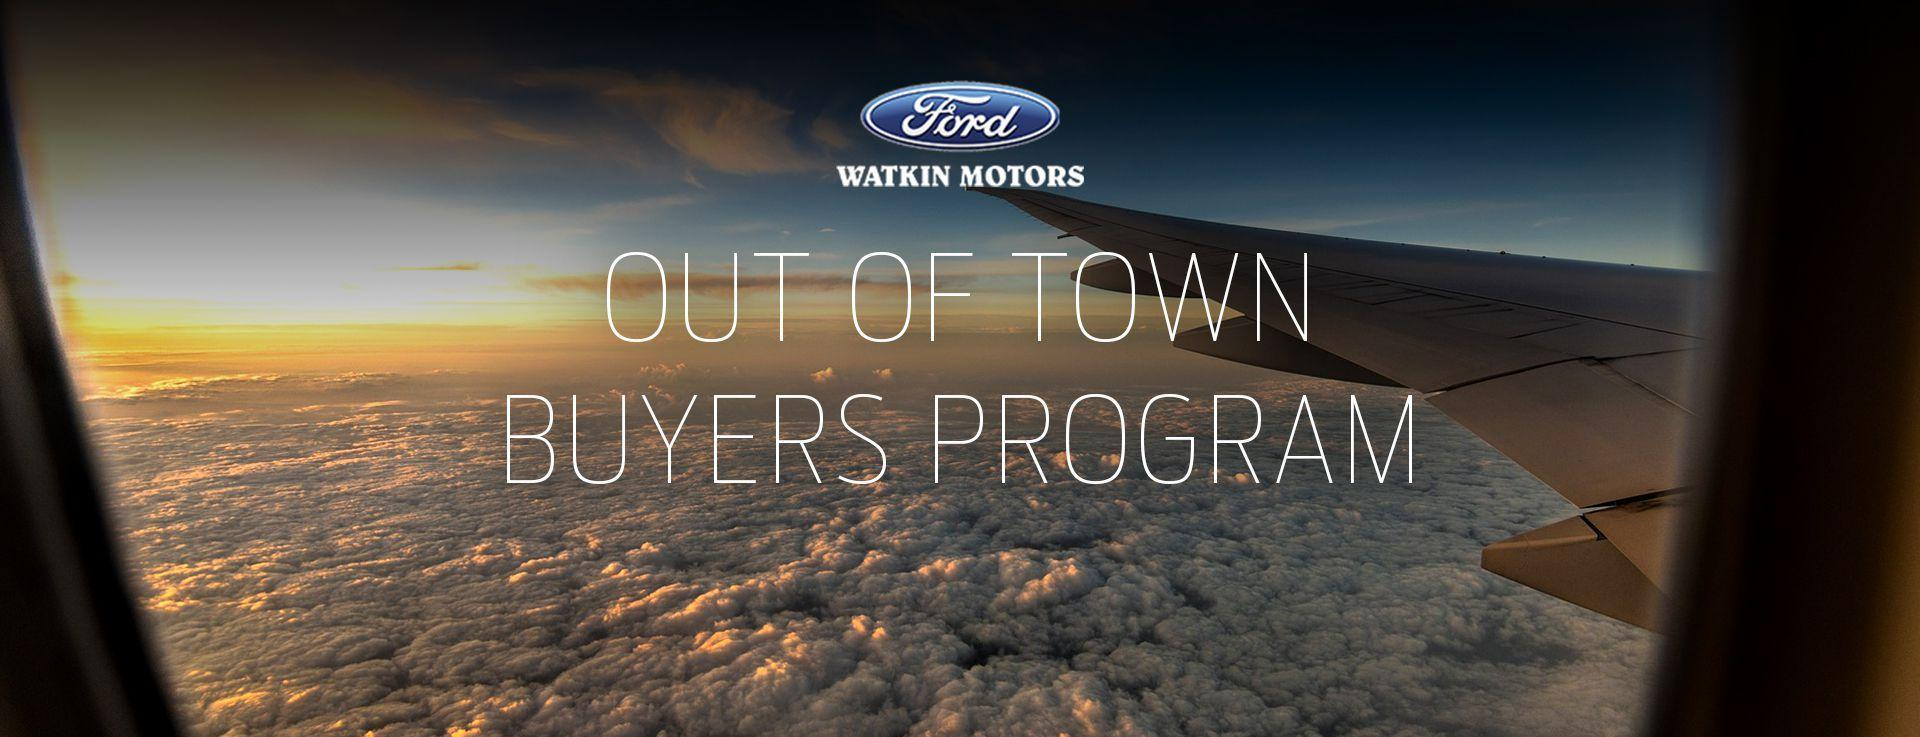 Out of Town Buyers Program